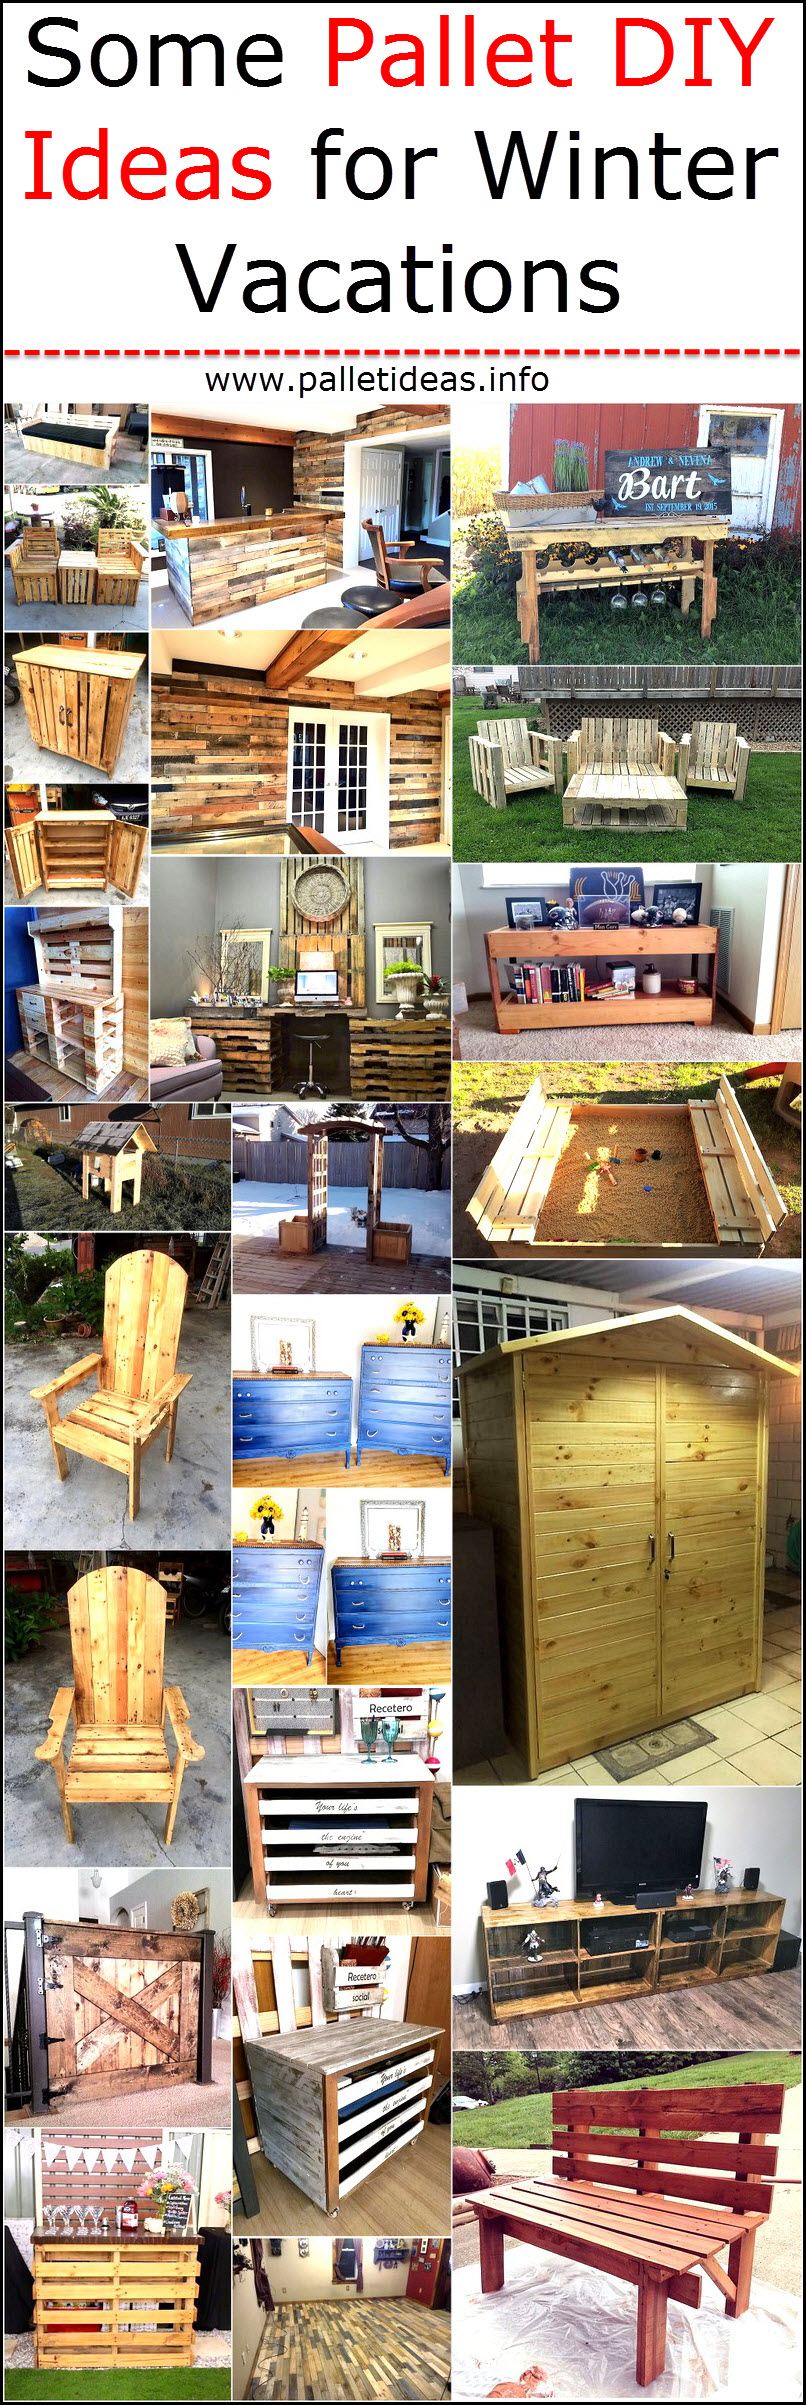 some-pallet-diy-ideas-for-winter-vacations